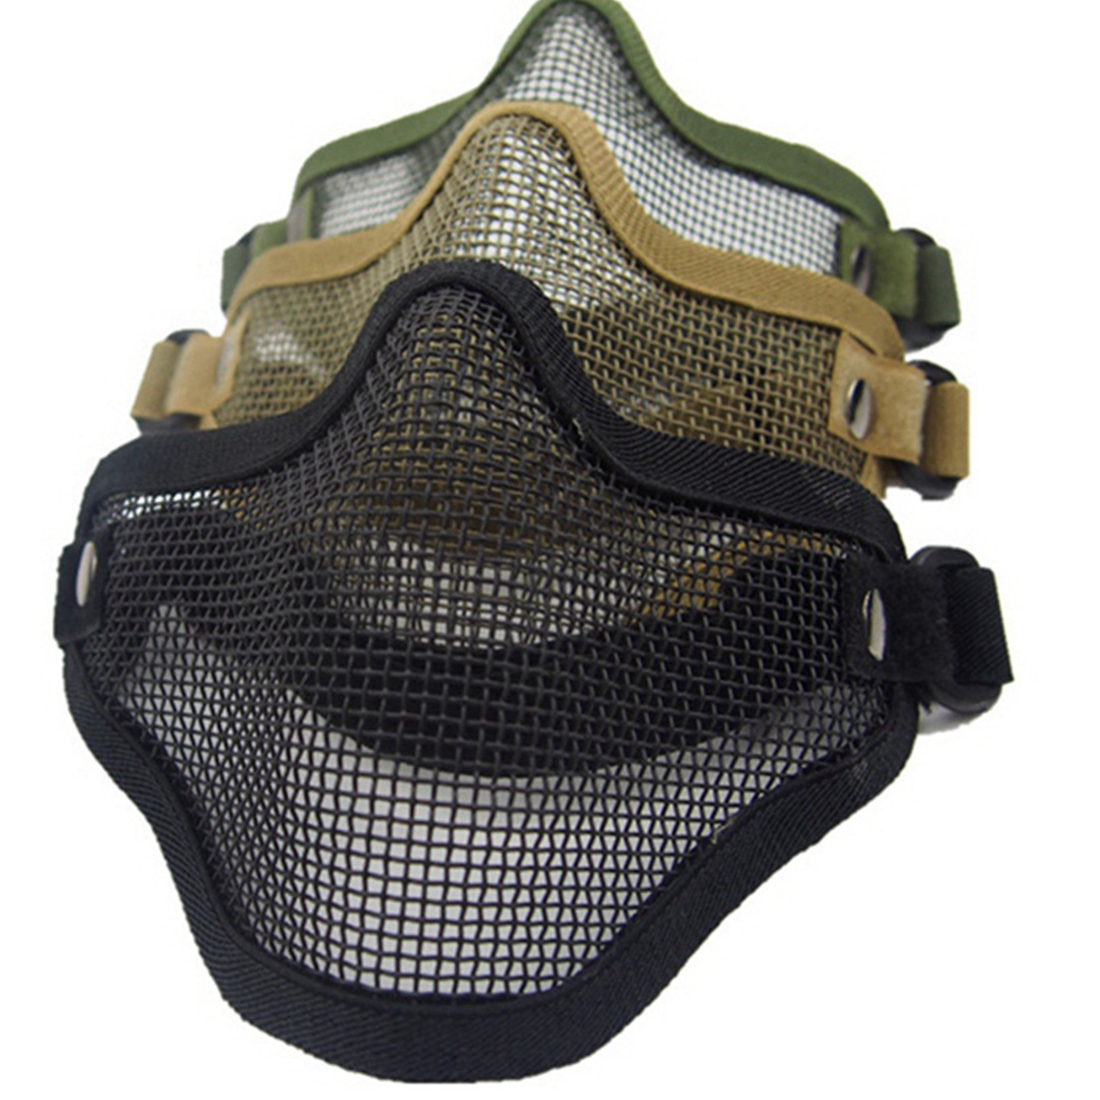 2018 New Half Lower Face Metal Steel Net Mesh Hunting Tactical Protective Airsoft Mask For Military Paintball Hunting Airsoft